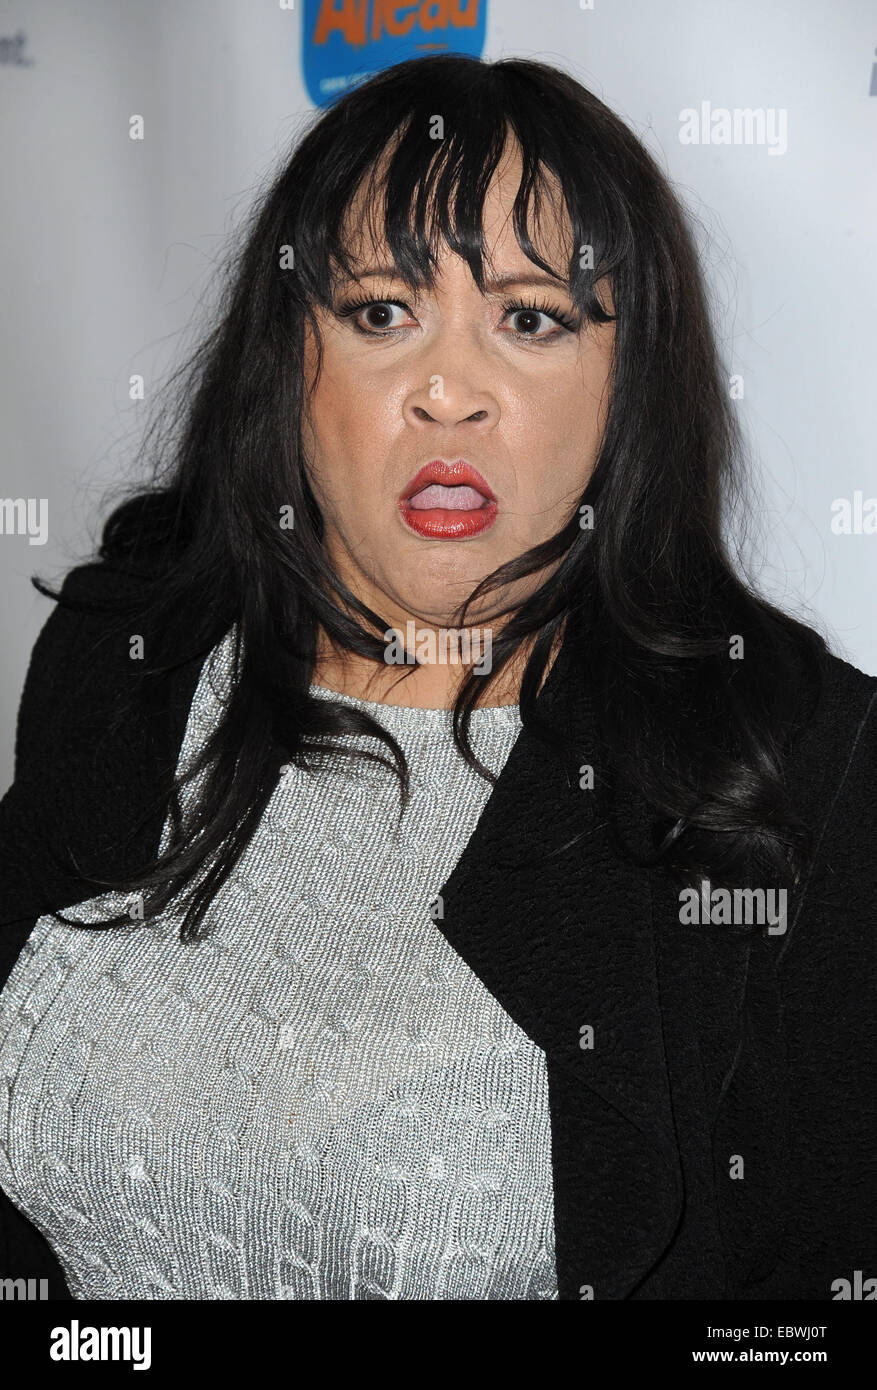 photo Jackee Harry